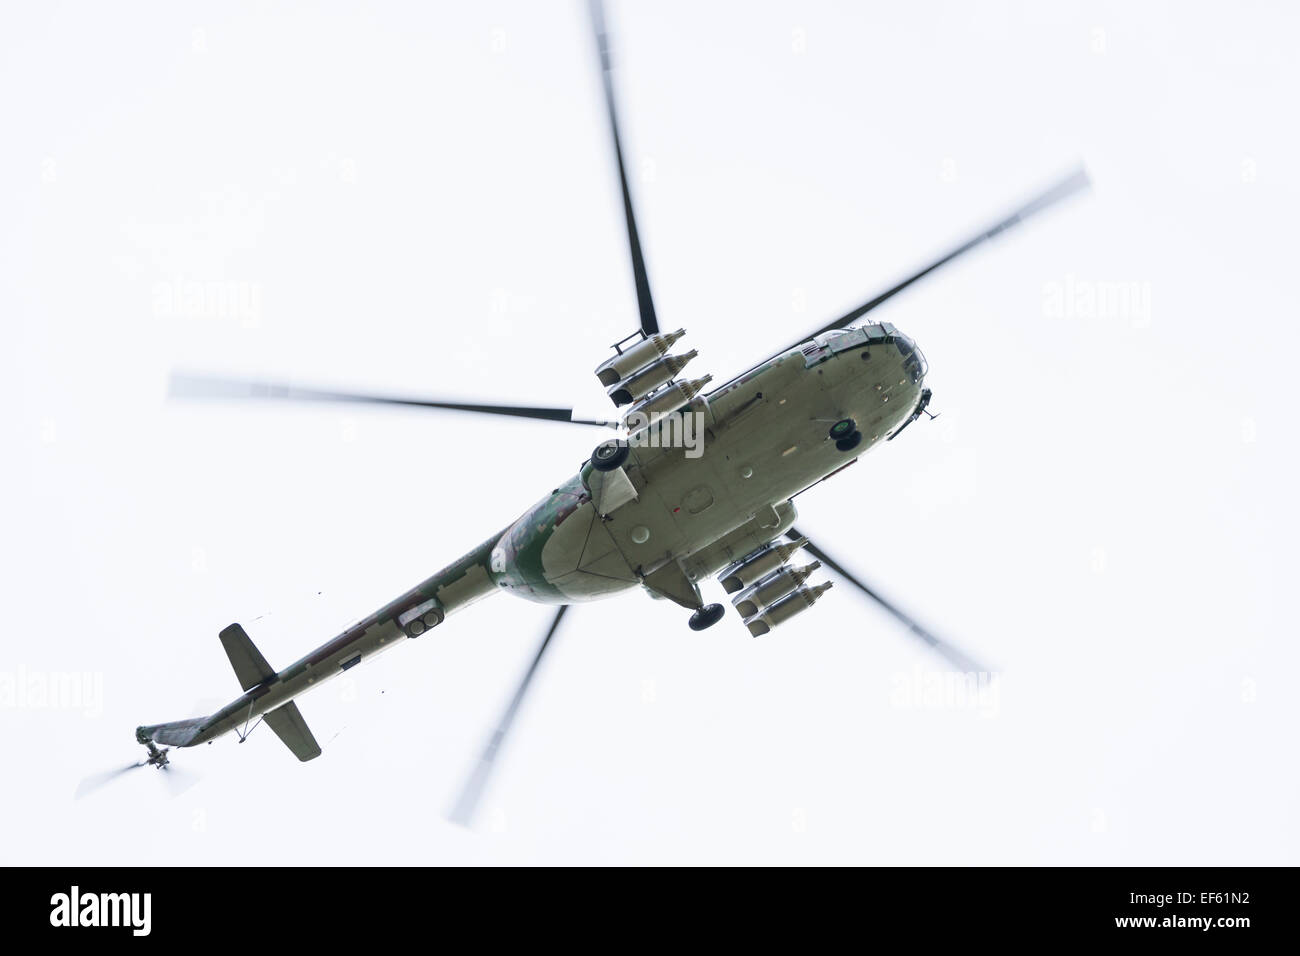 Underside view of helicopter flying in the sky, Slovakia - Stock Image